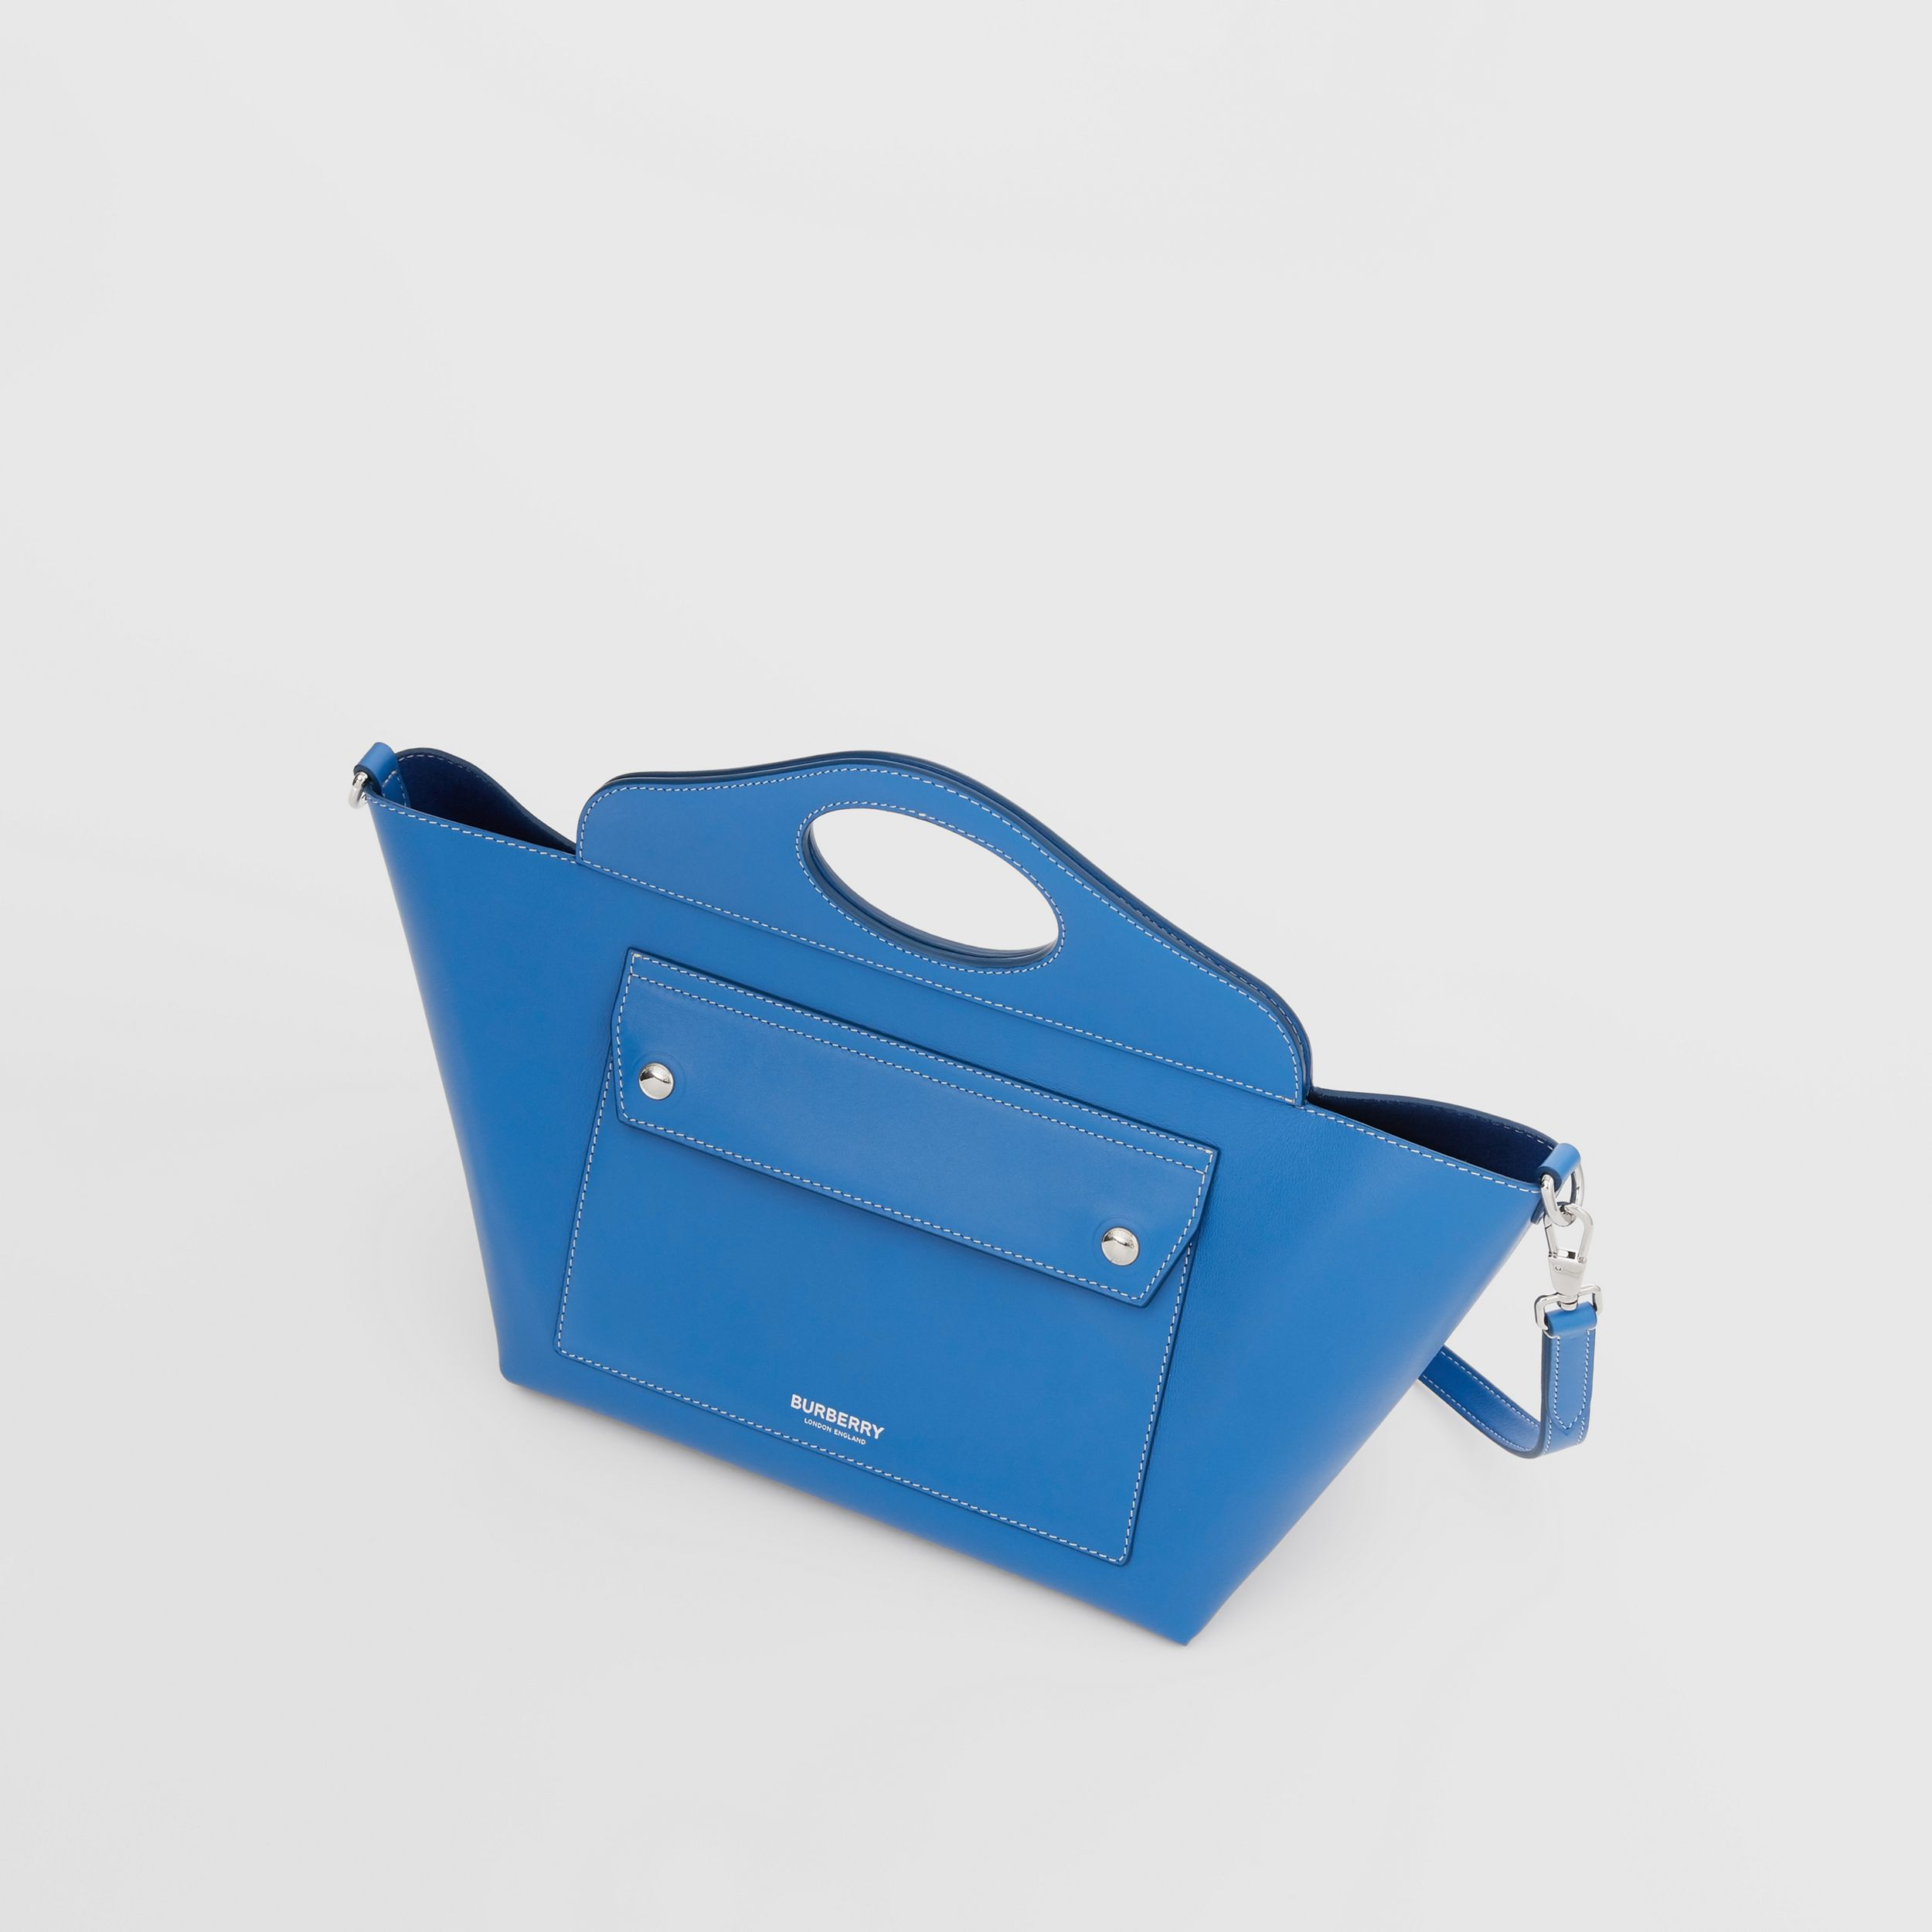 Mini Leather Soft Pocket Tote in Warm Royal Blue - Women | Burberry United States - 3